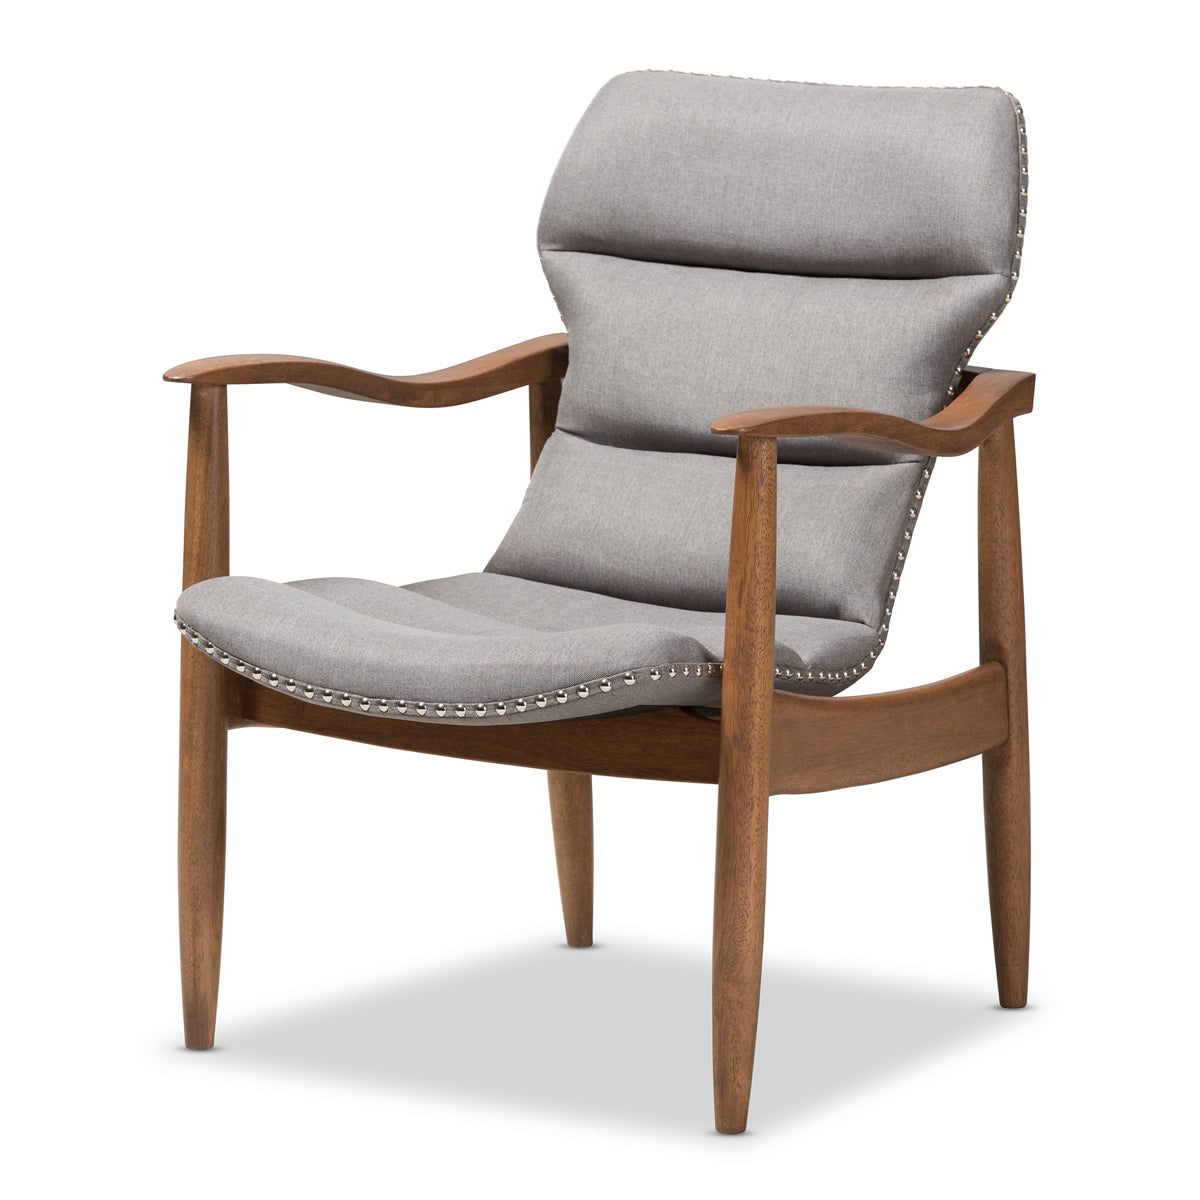 Baxton Studio Hadley Mid-Century Modern Grey Fabric and Walnut Brown Finished Wood Lounge Chair Baxton Studio-chairs-Minimal And Modern - 1